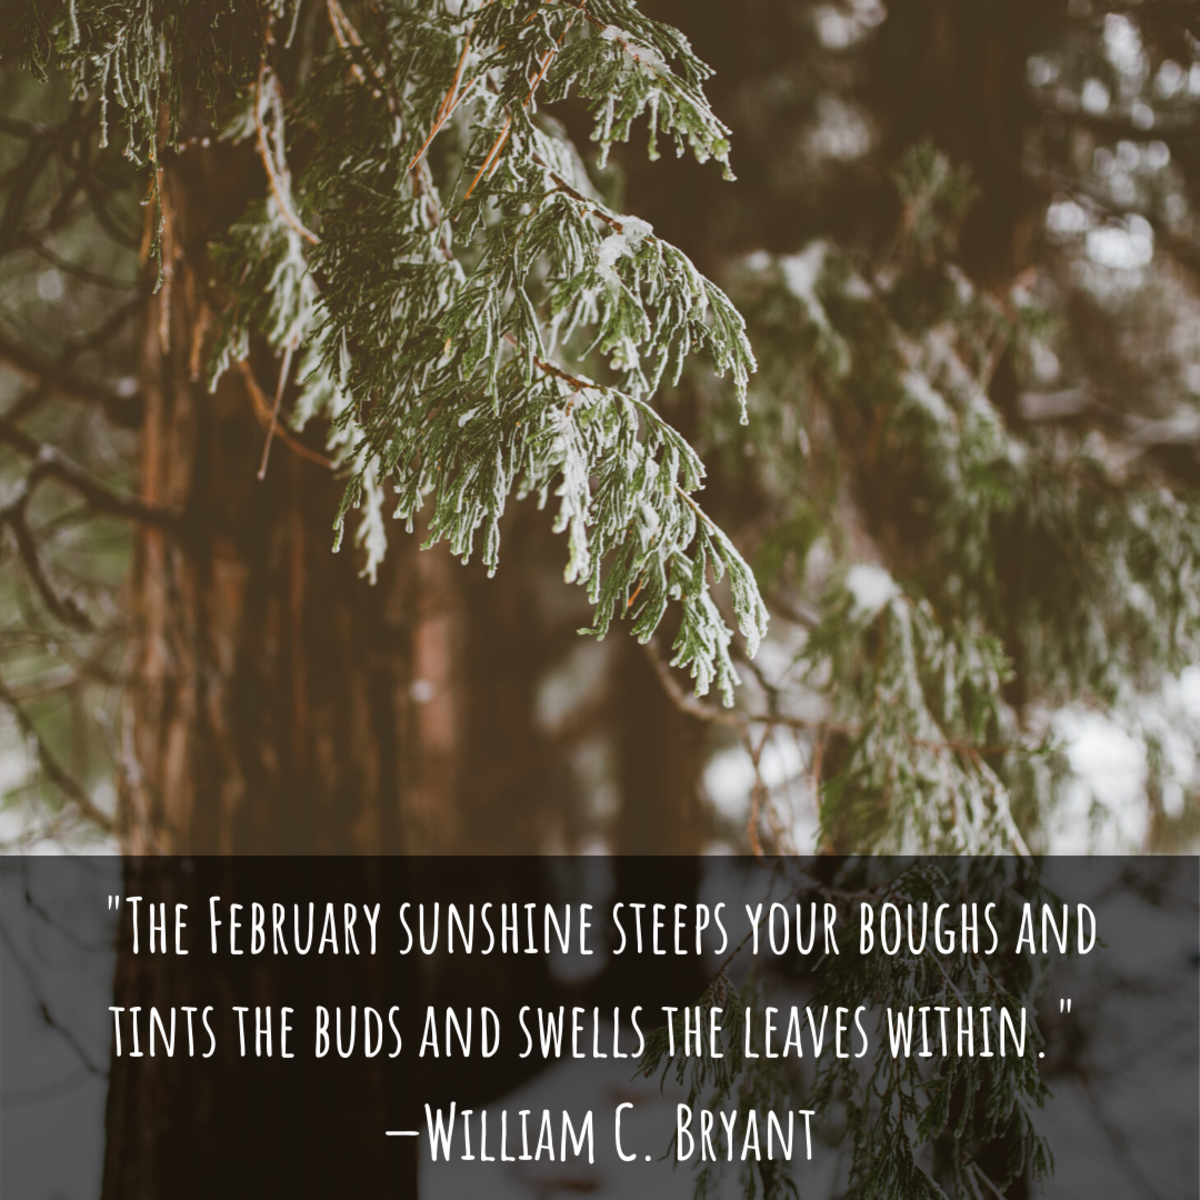 """The February sunshine steeps your boughs and tints the buds and swells the leaves within."" —William C. Bryant"